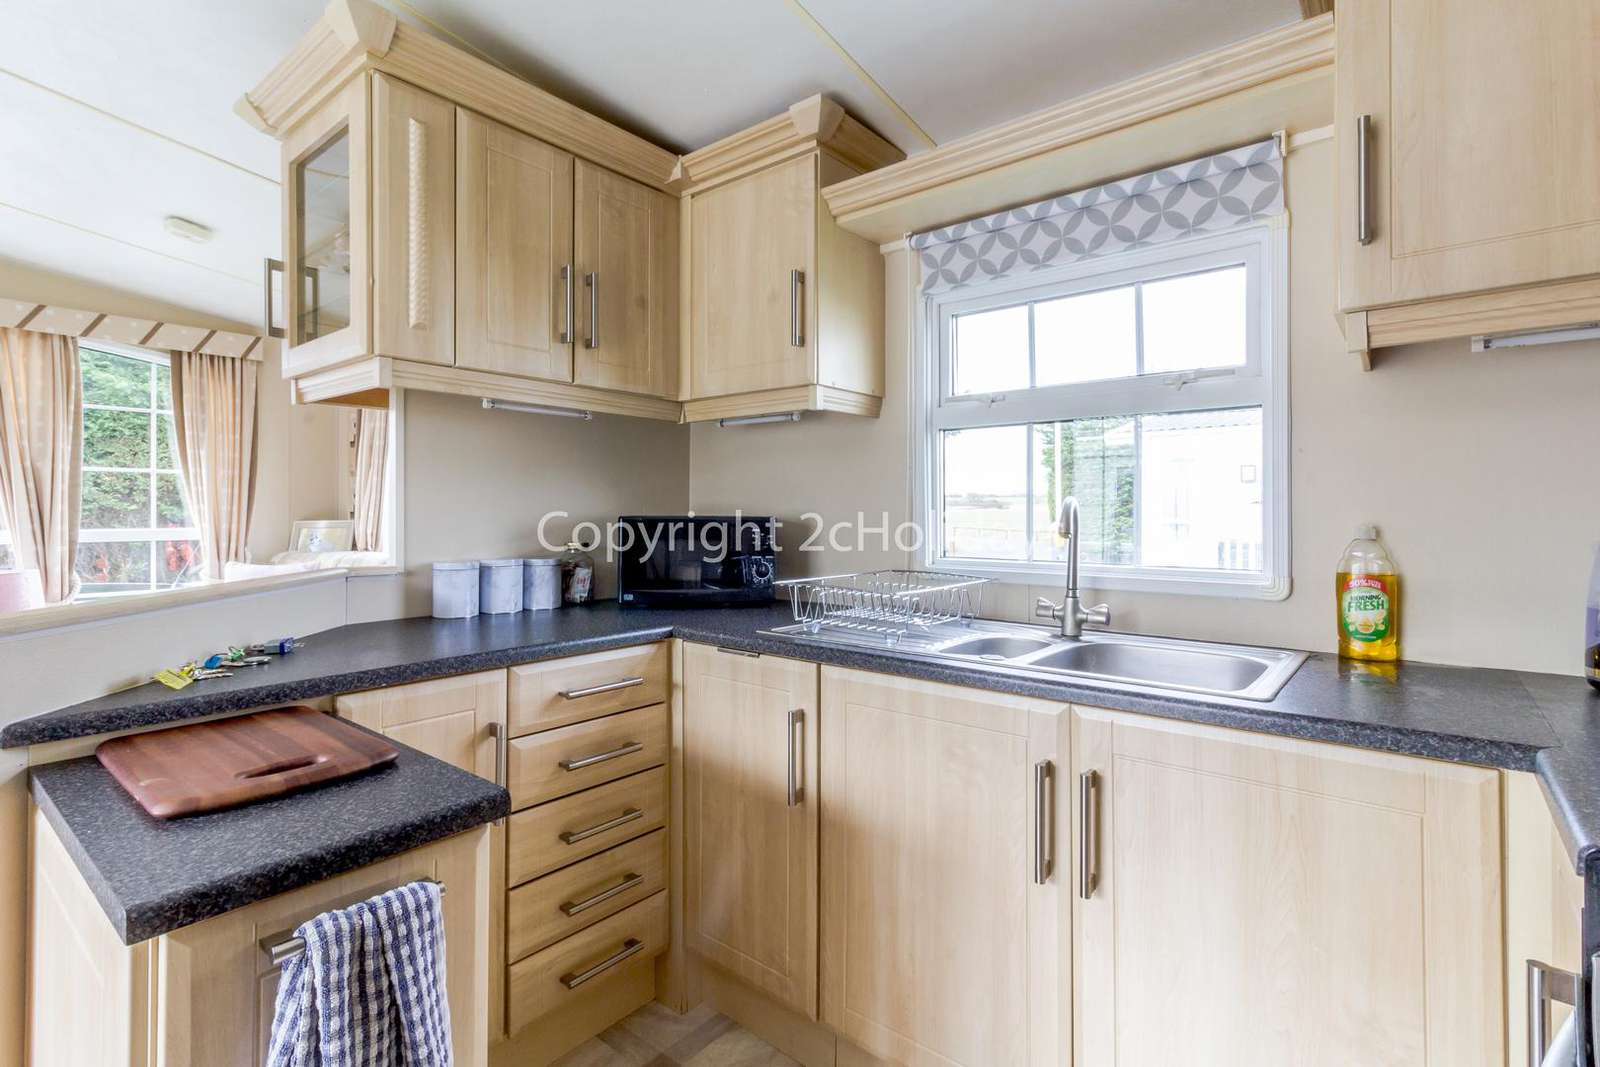 Fully equipped kitchen, perfect for self-catering holidays!